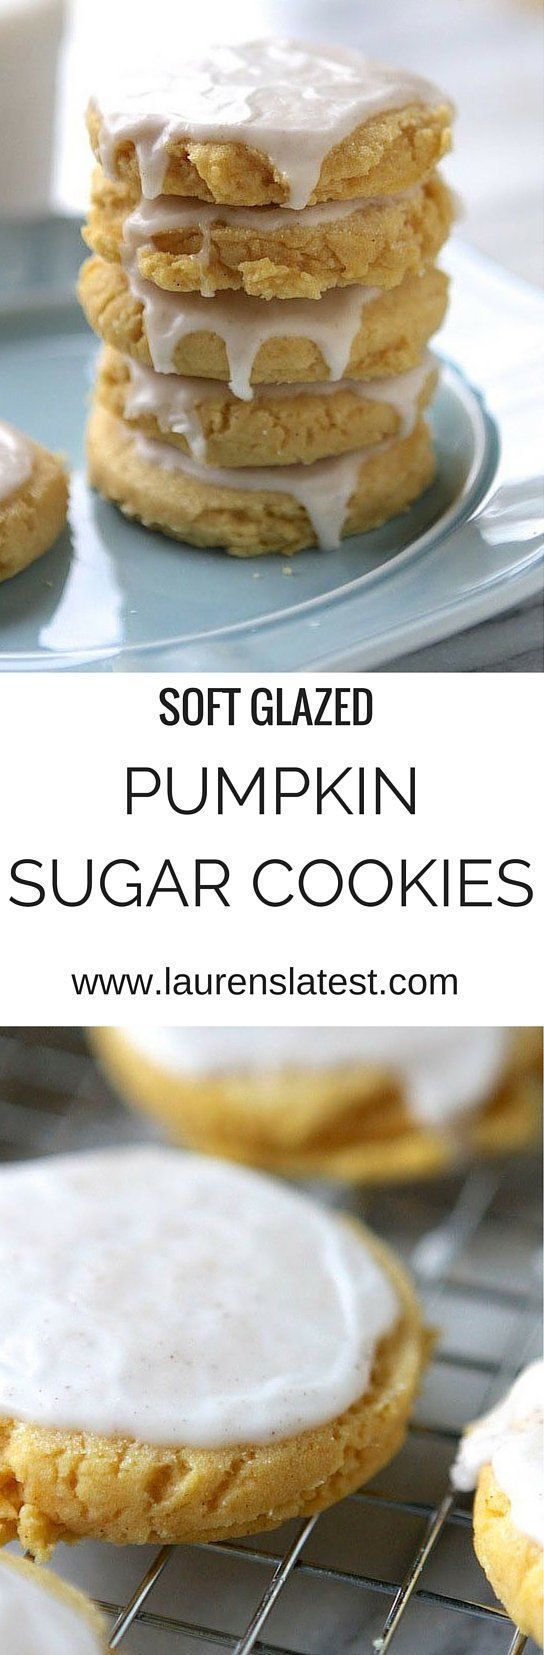 Soft Glazed Pumpkin Sugar Cookies...the perfect cookie for Fall!